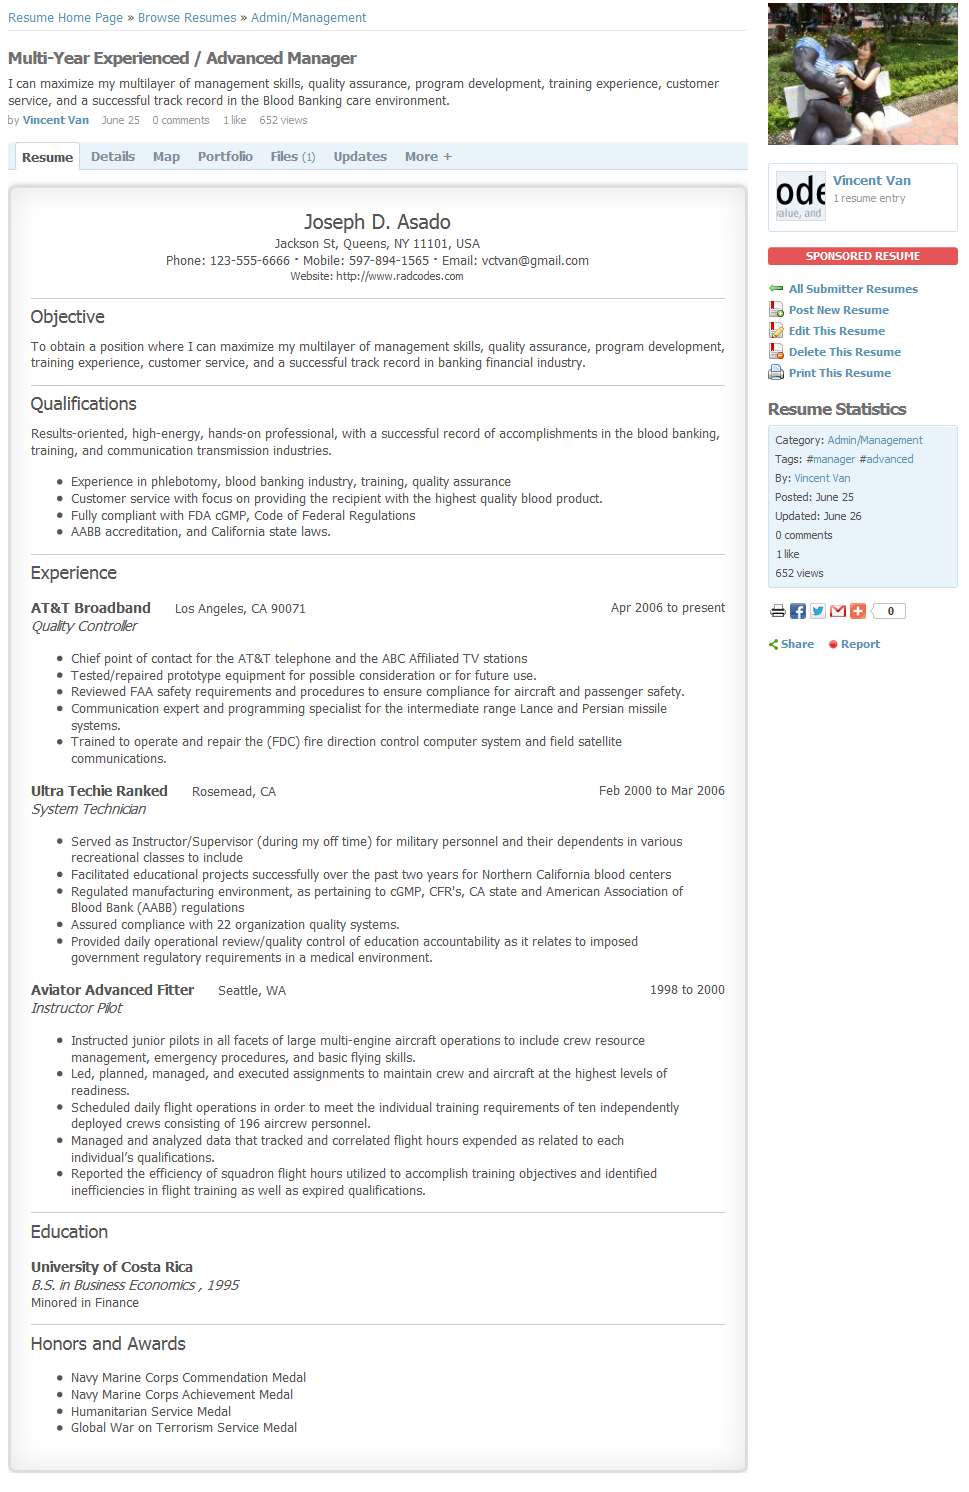 Resume Builder Template Free Sales Executive Sample Resume Free With     Amazing Resume Maker Free Download WorkLifeGroup